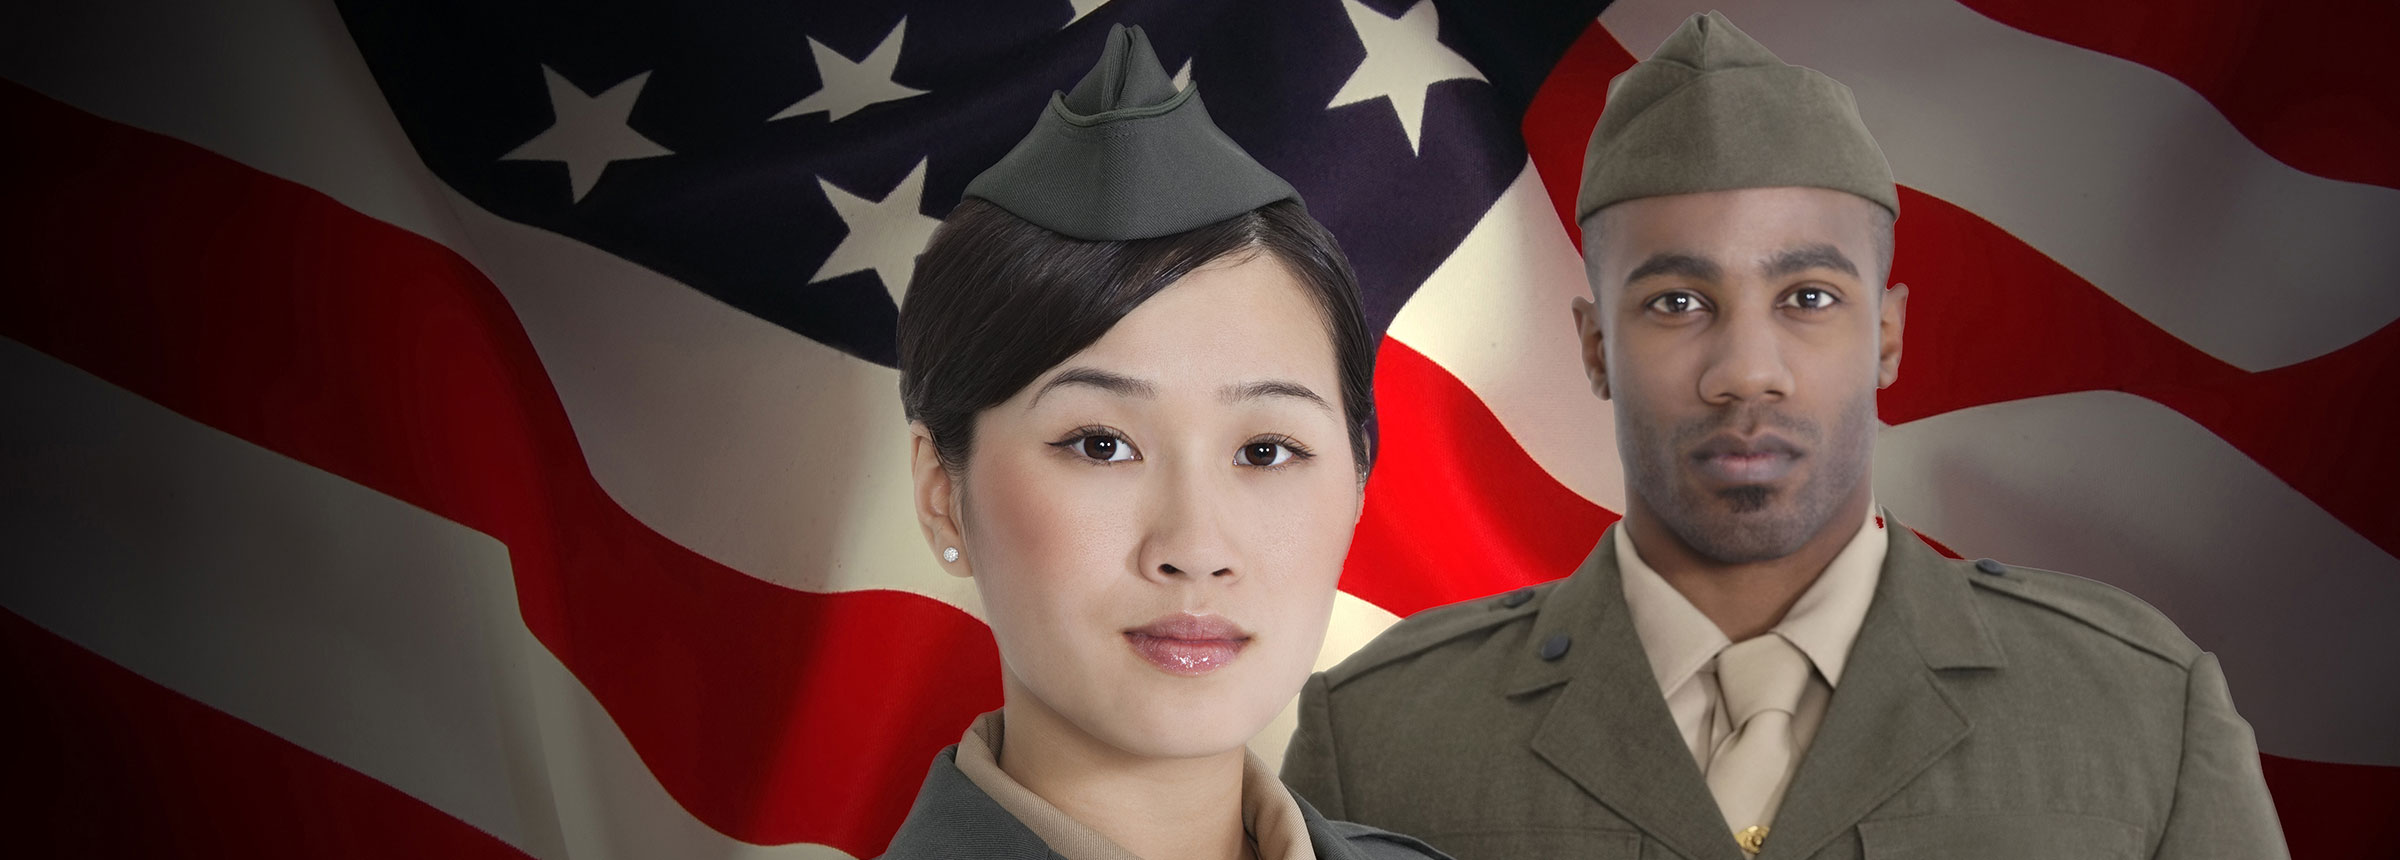 man and woman in military uniform with american flag background